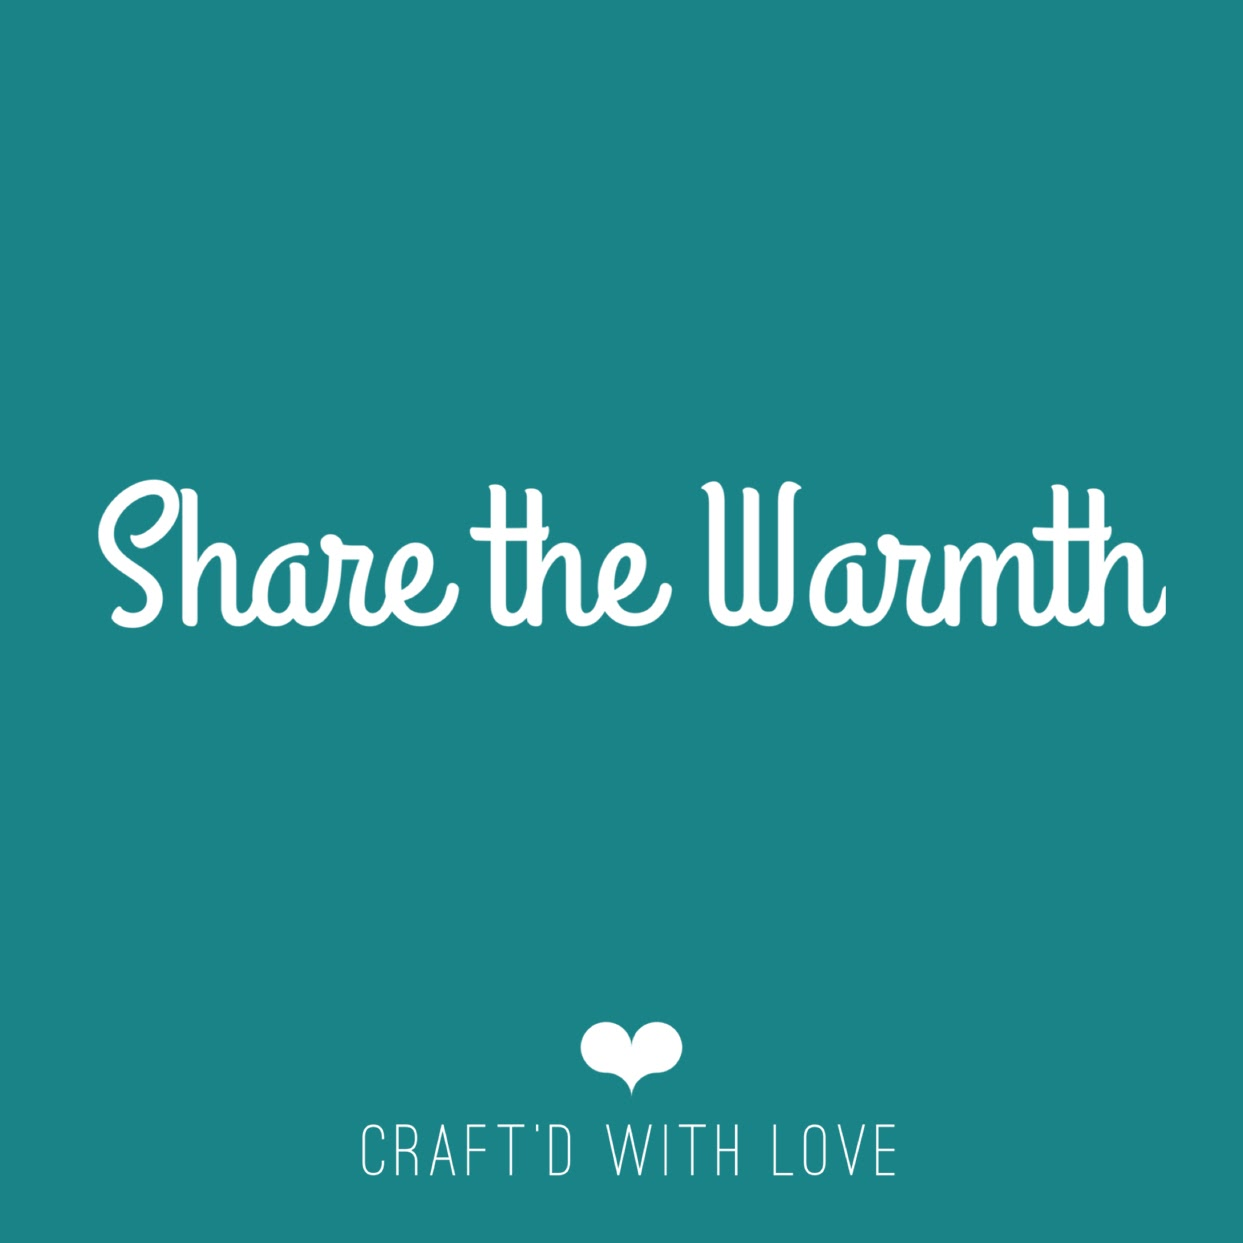 Help us share the warmth this HOLiday season. To Donate now visit  BIT.LY/SharingWarmth